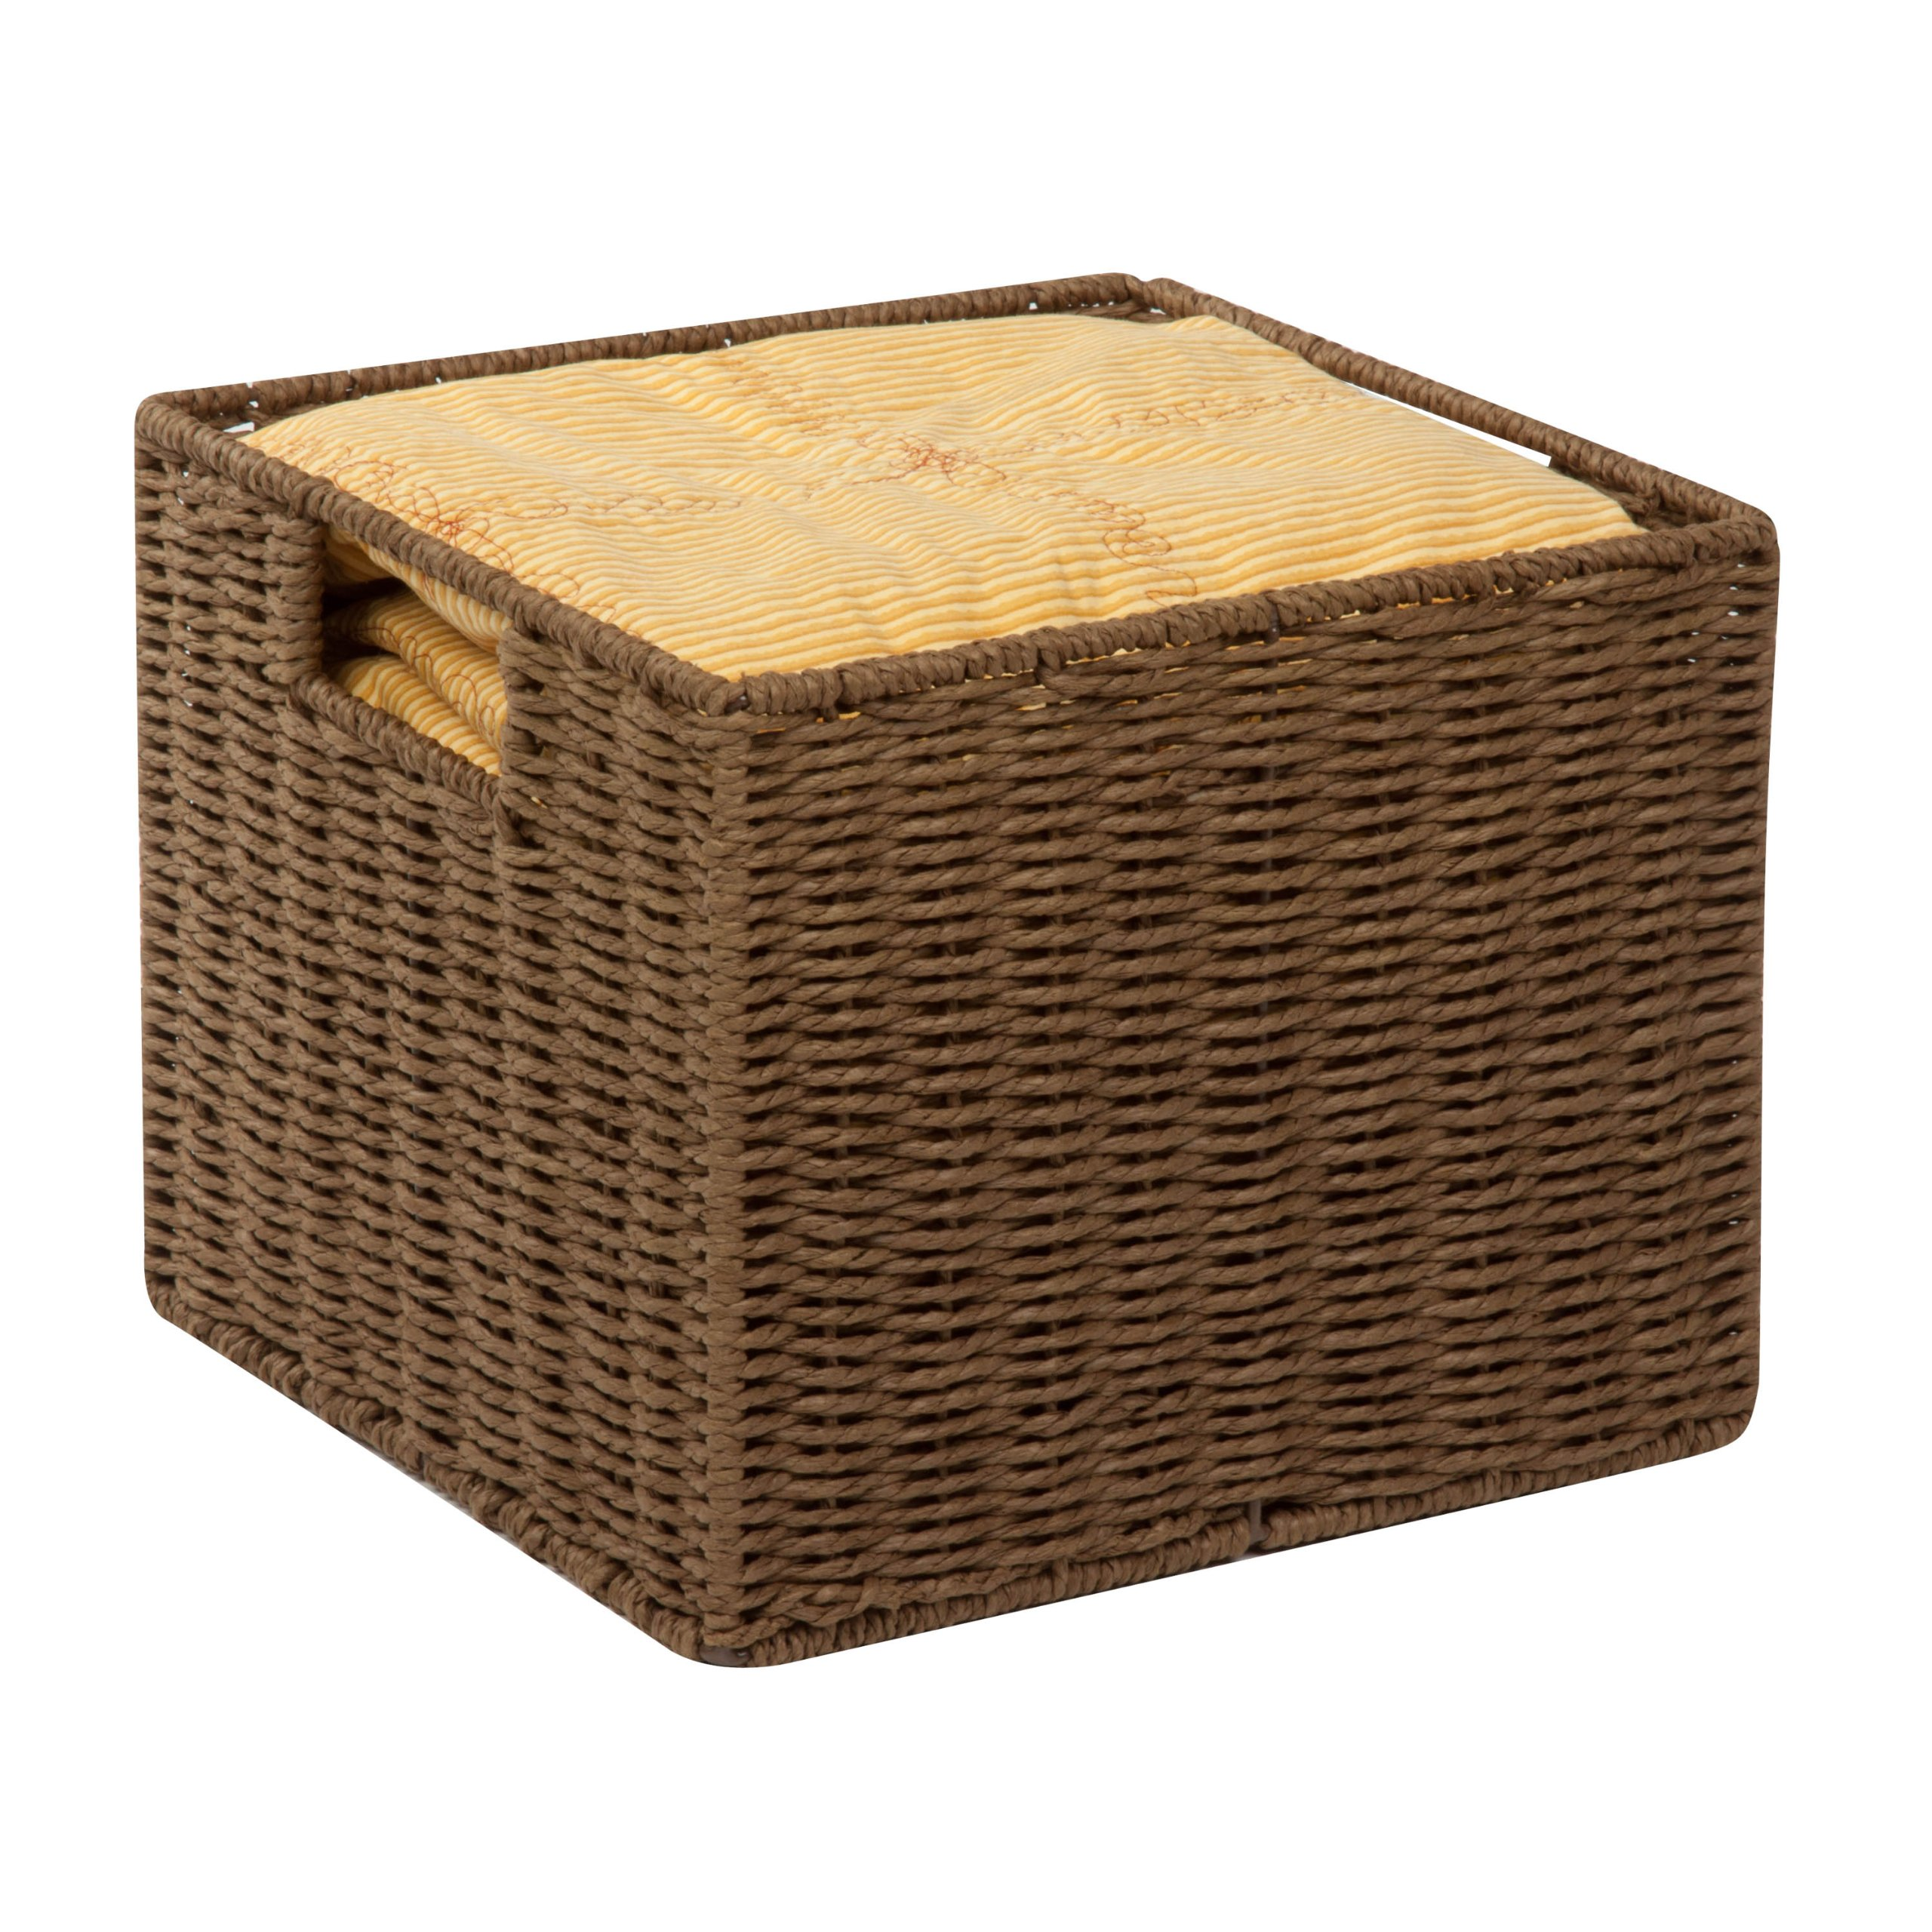 Honey-Can-Do STO-03567 Parchment Cord Crate with Handles, Brown, 12.2 x 13 x 10 inches